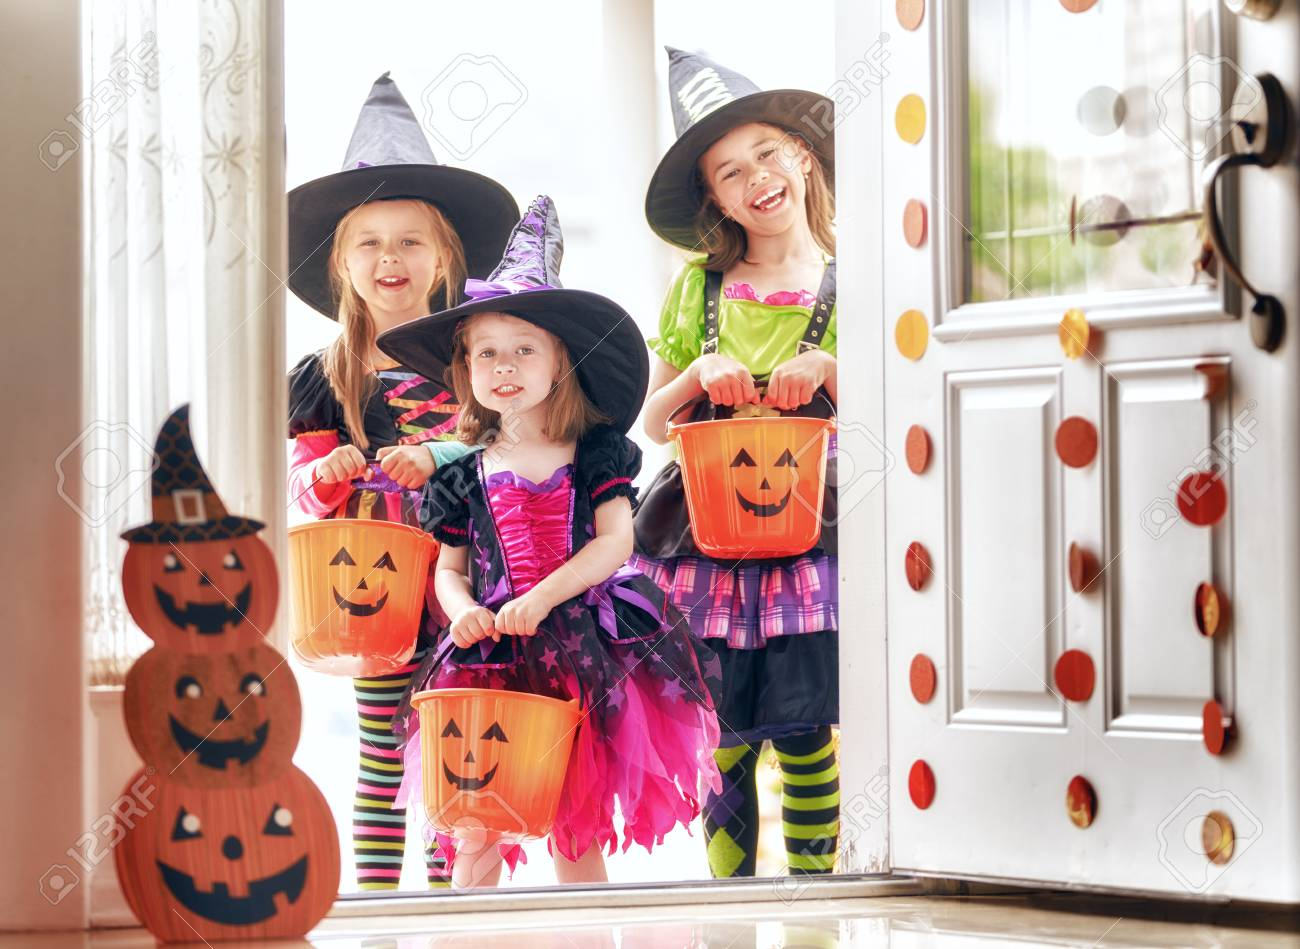 Happy Halloween! Three cute little laughing girls in witches costumes are coming to the house for sweets. - 106387282